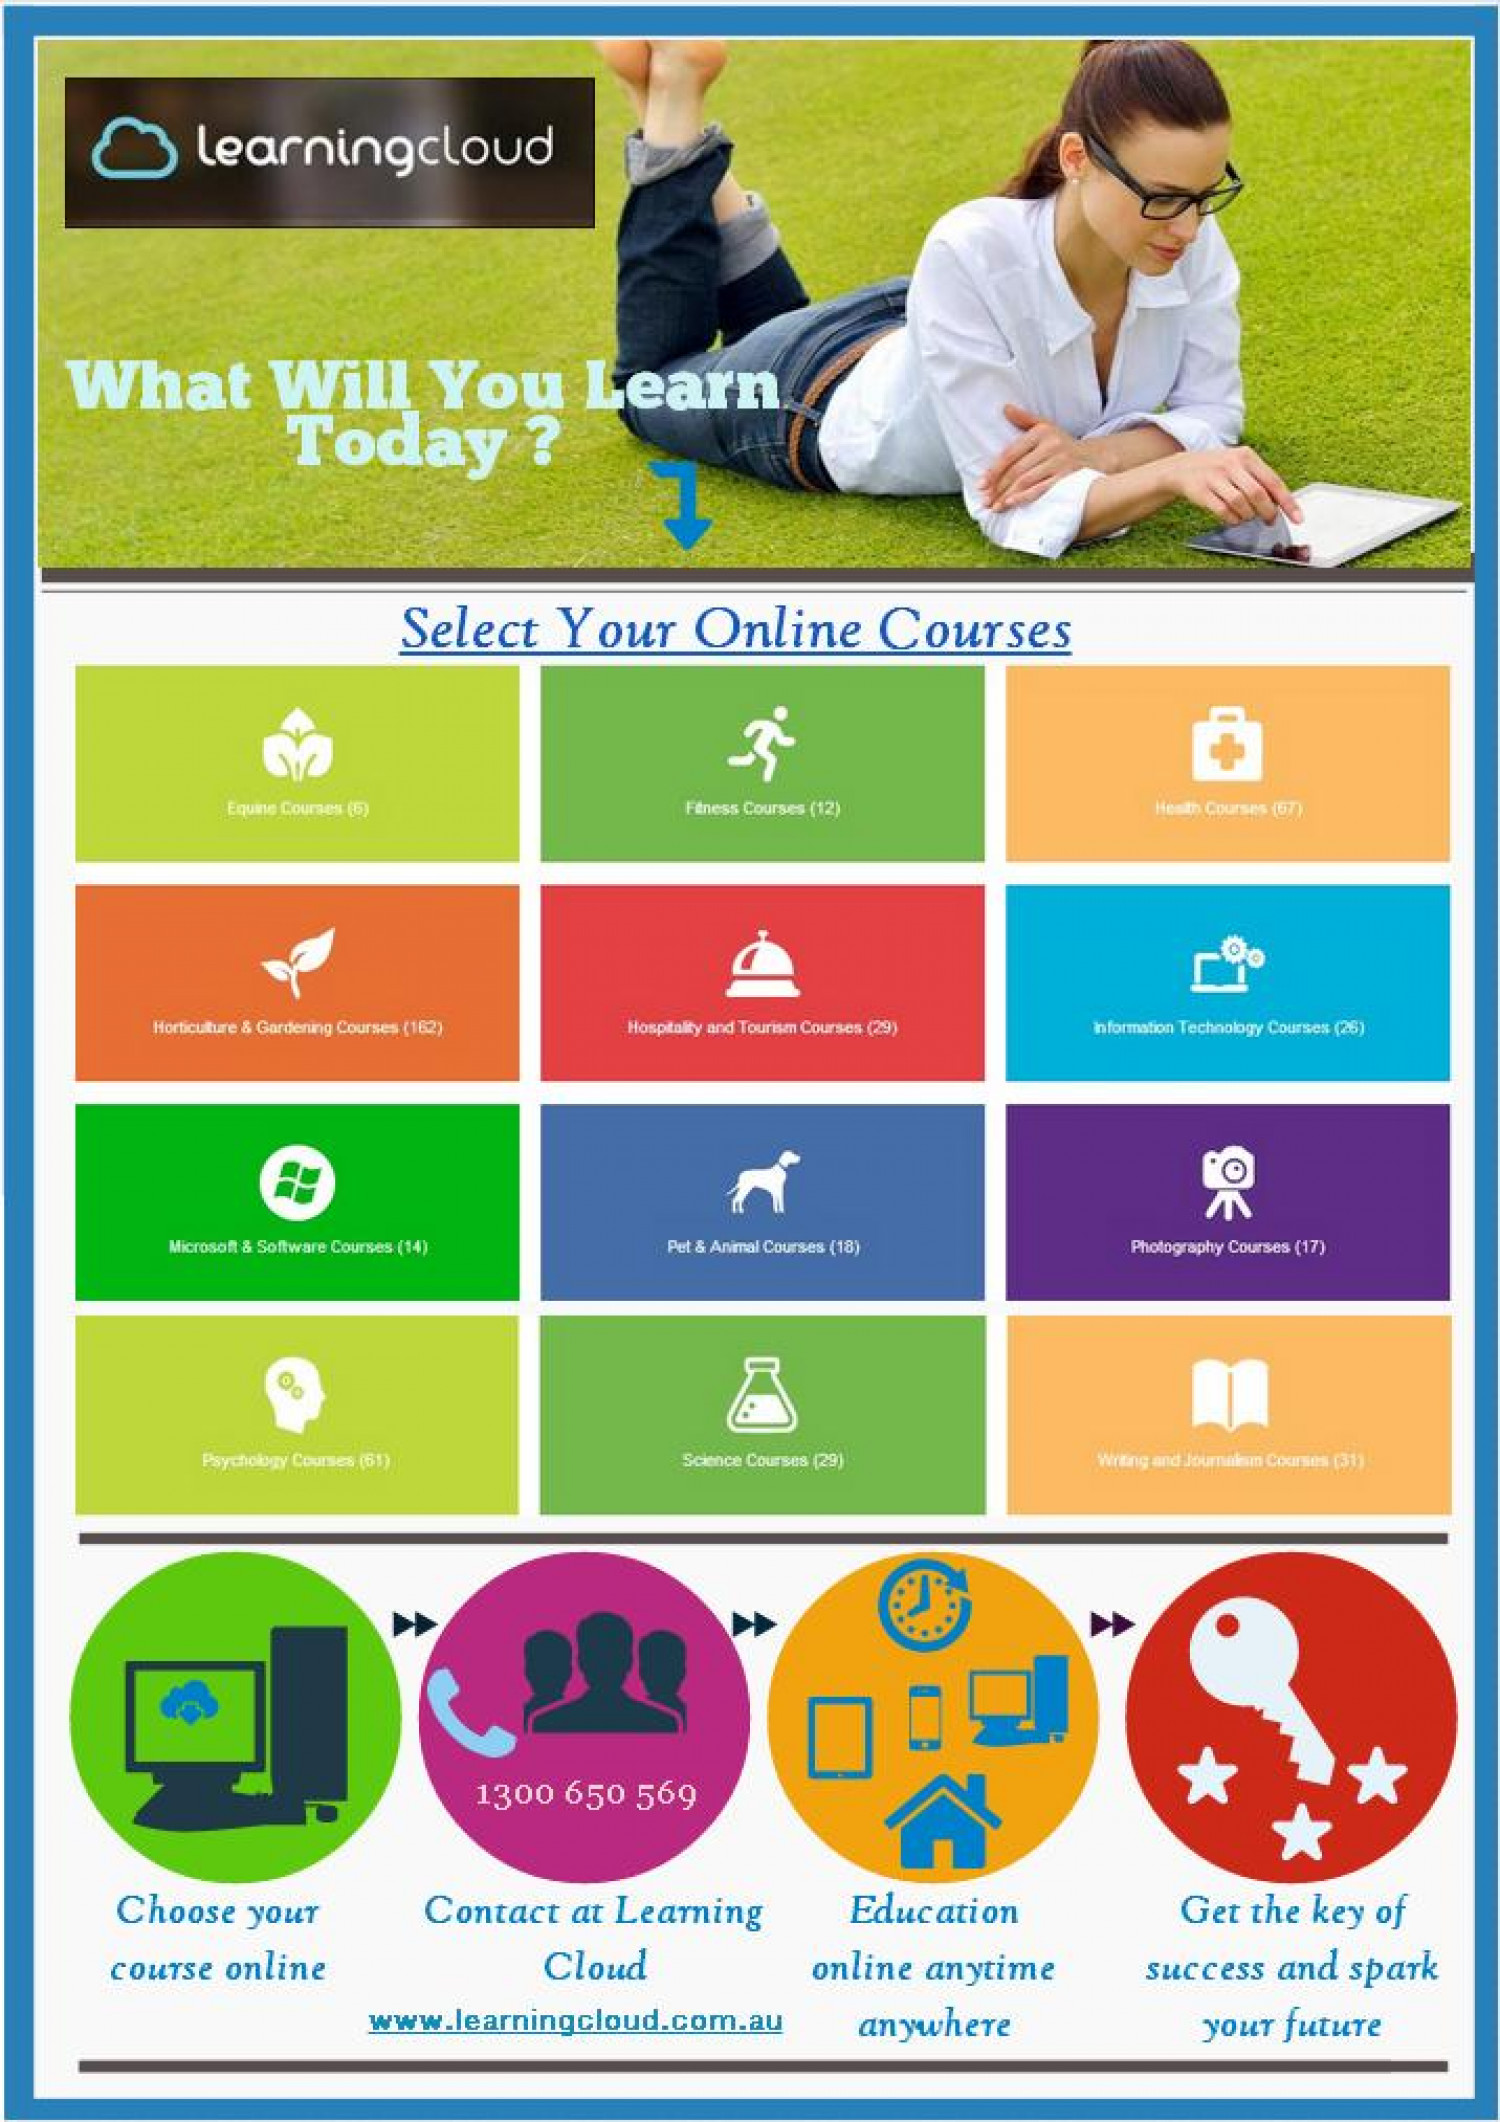 Online Courses at Learning Cloud Infographic